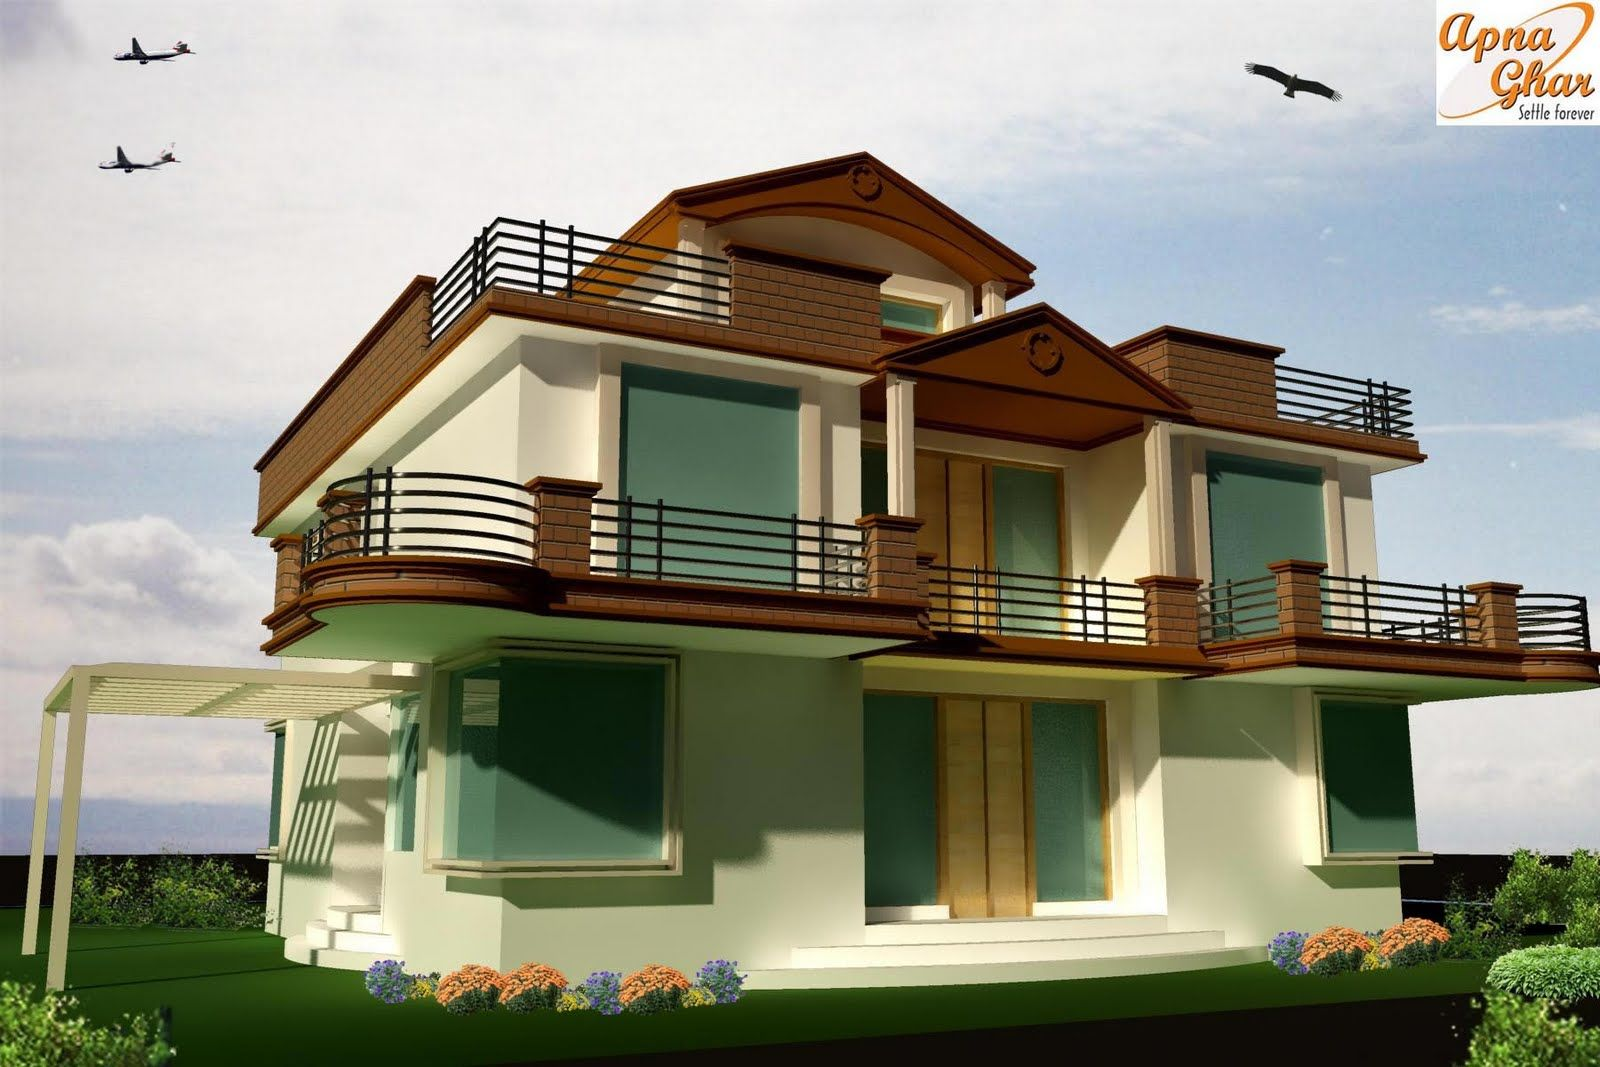 Architectural Designs Modern Architectural House Plans Architectural Customized